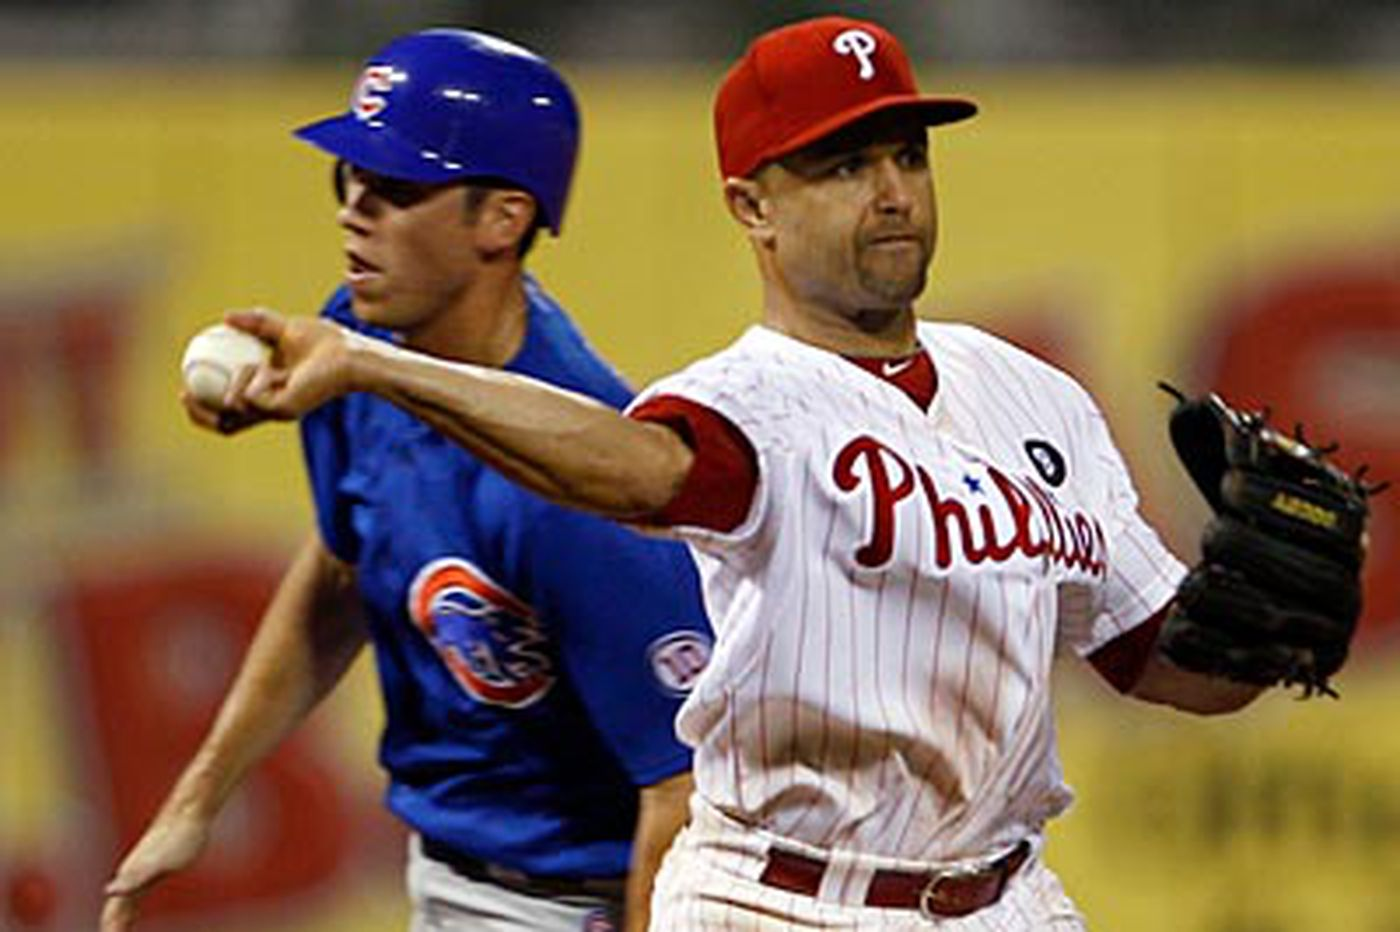 Phillies fall to Cubs in 11